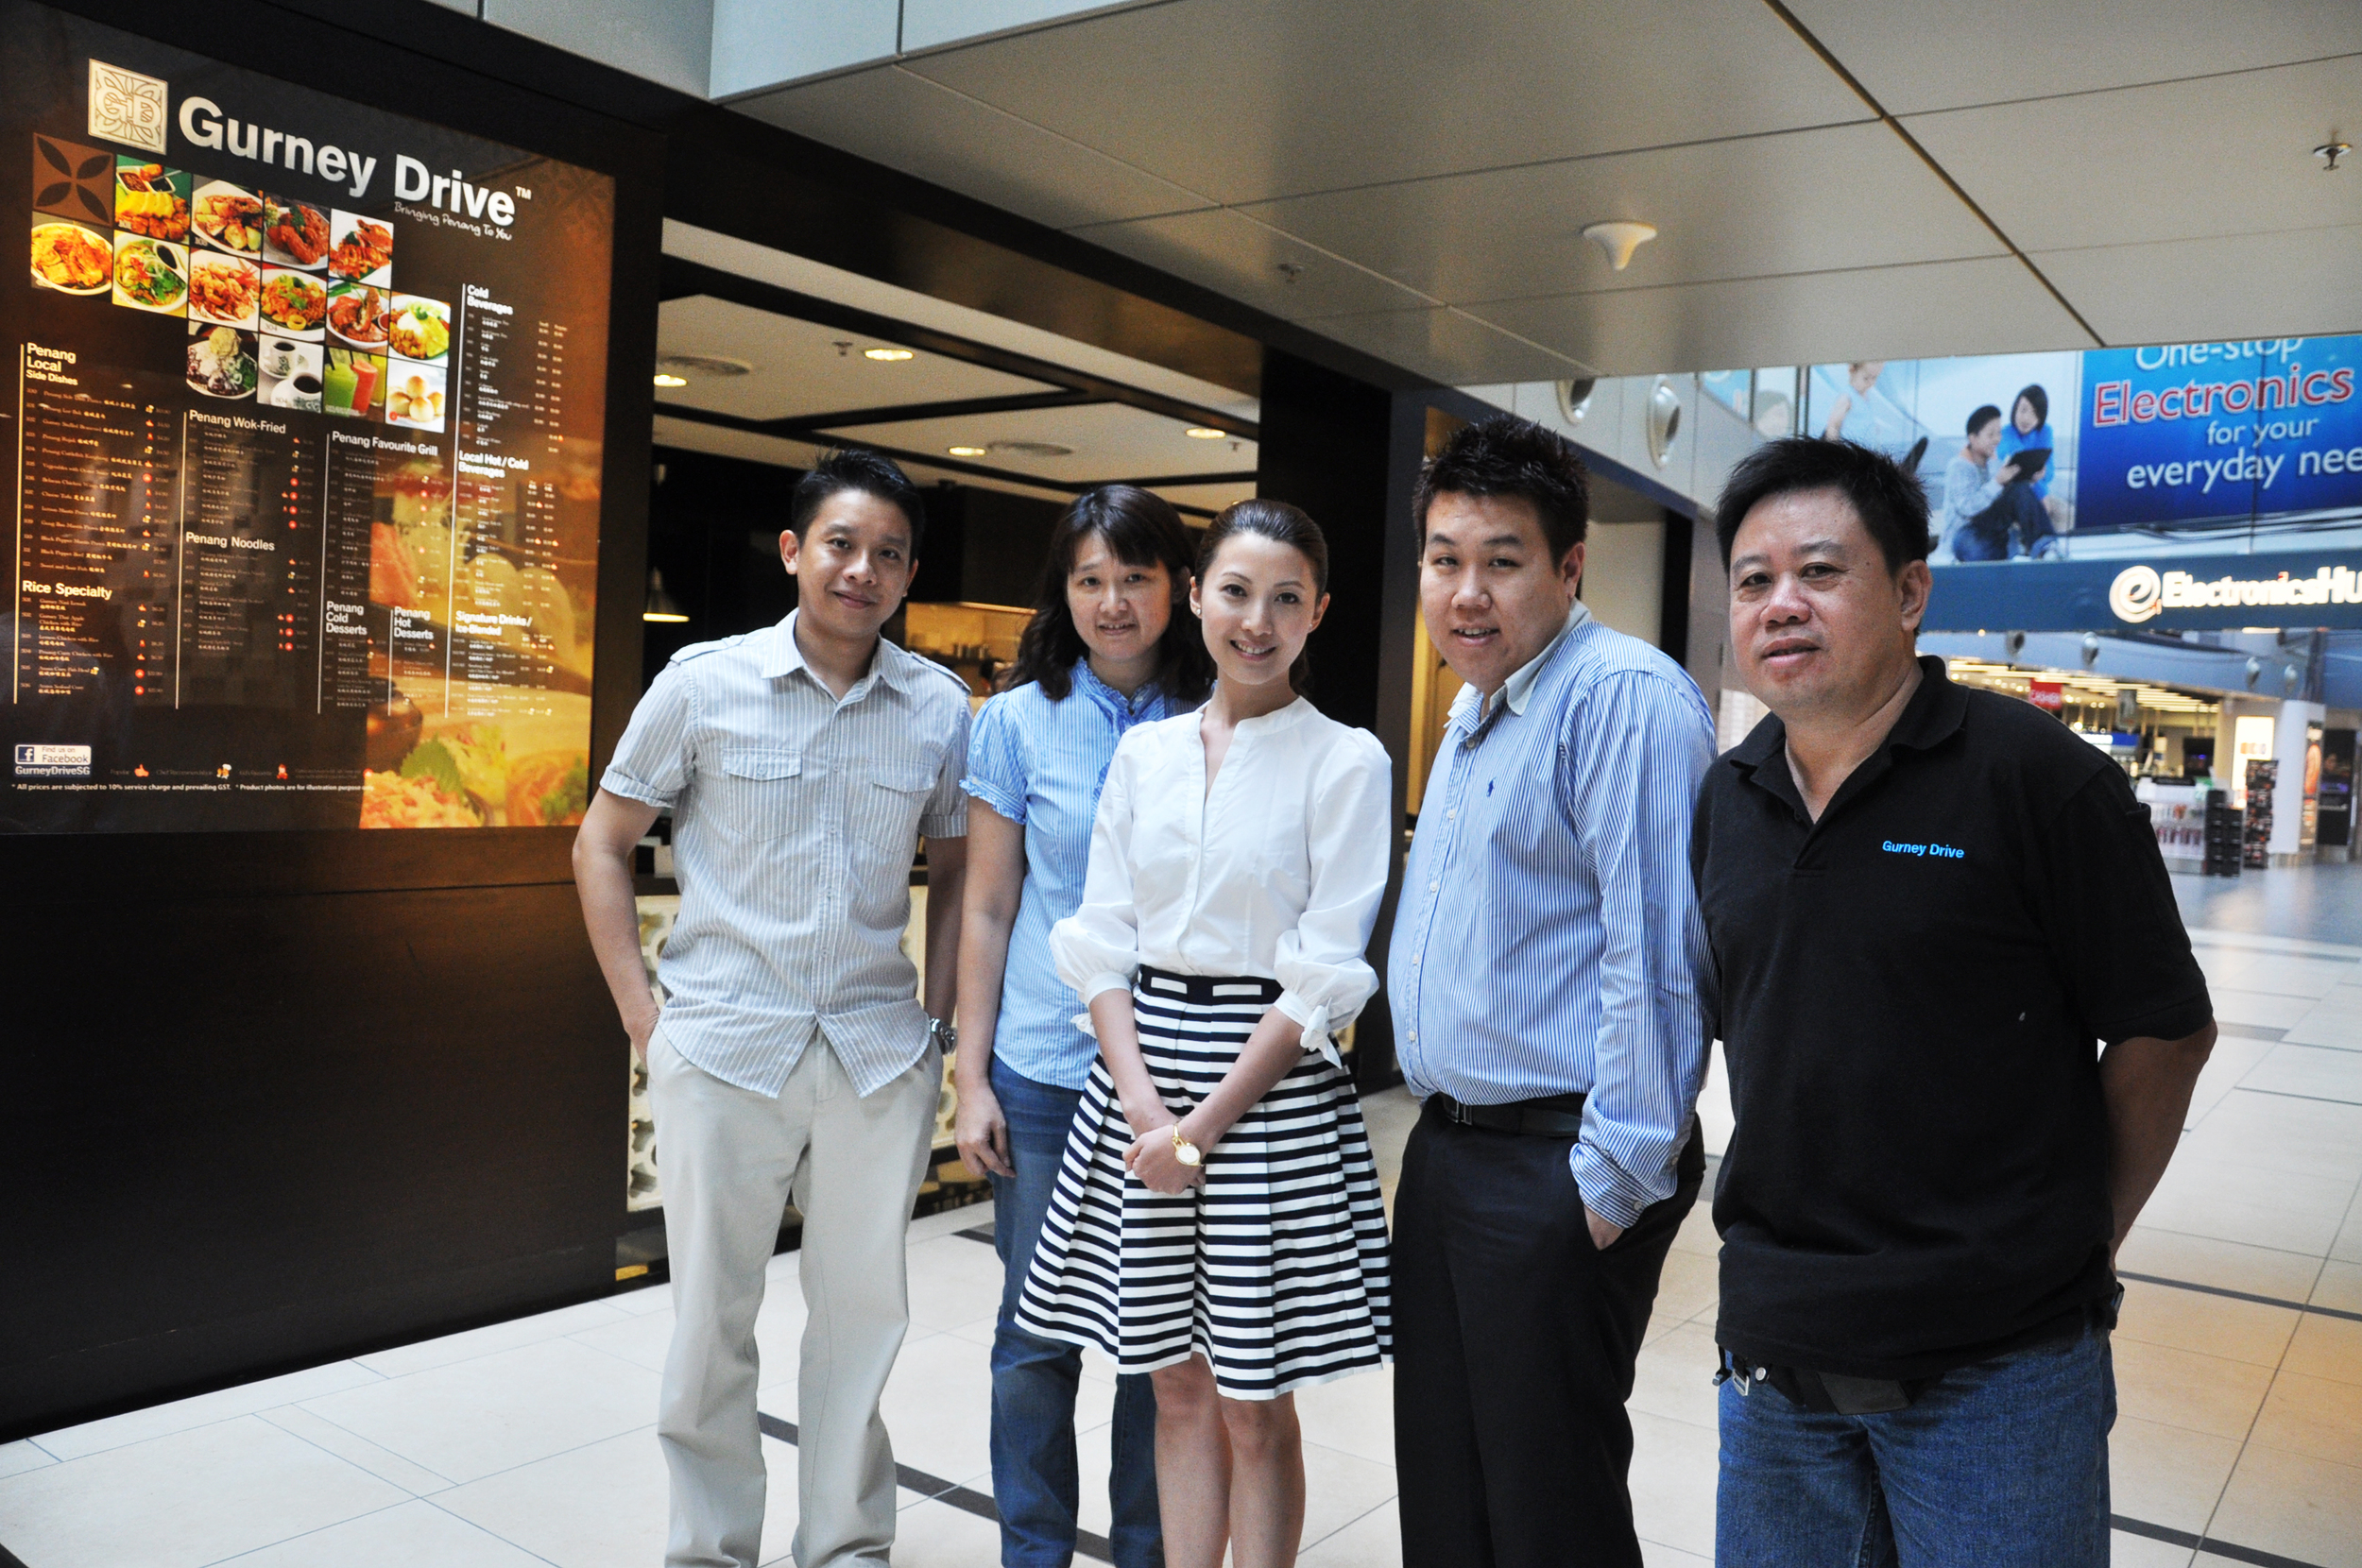 Mediacorp Artiste Jeannete Aw at Gurney Drive @ Changi Airport Terminal 3